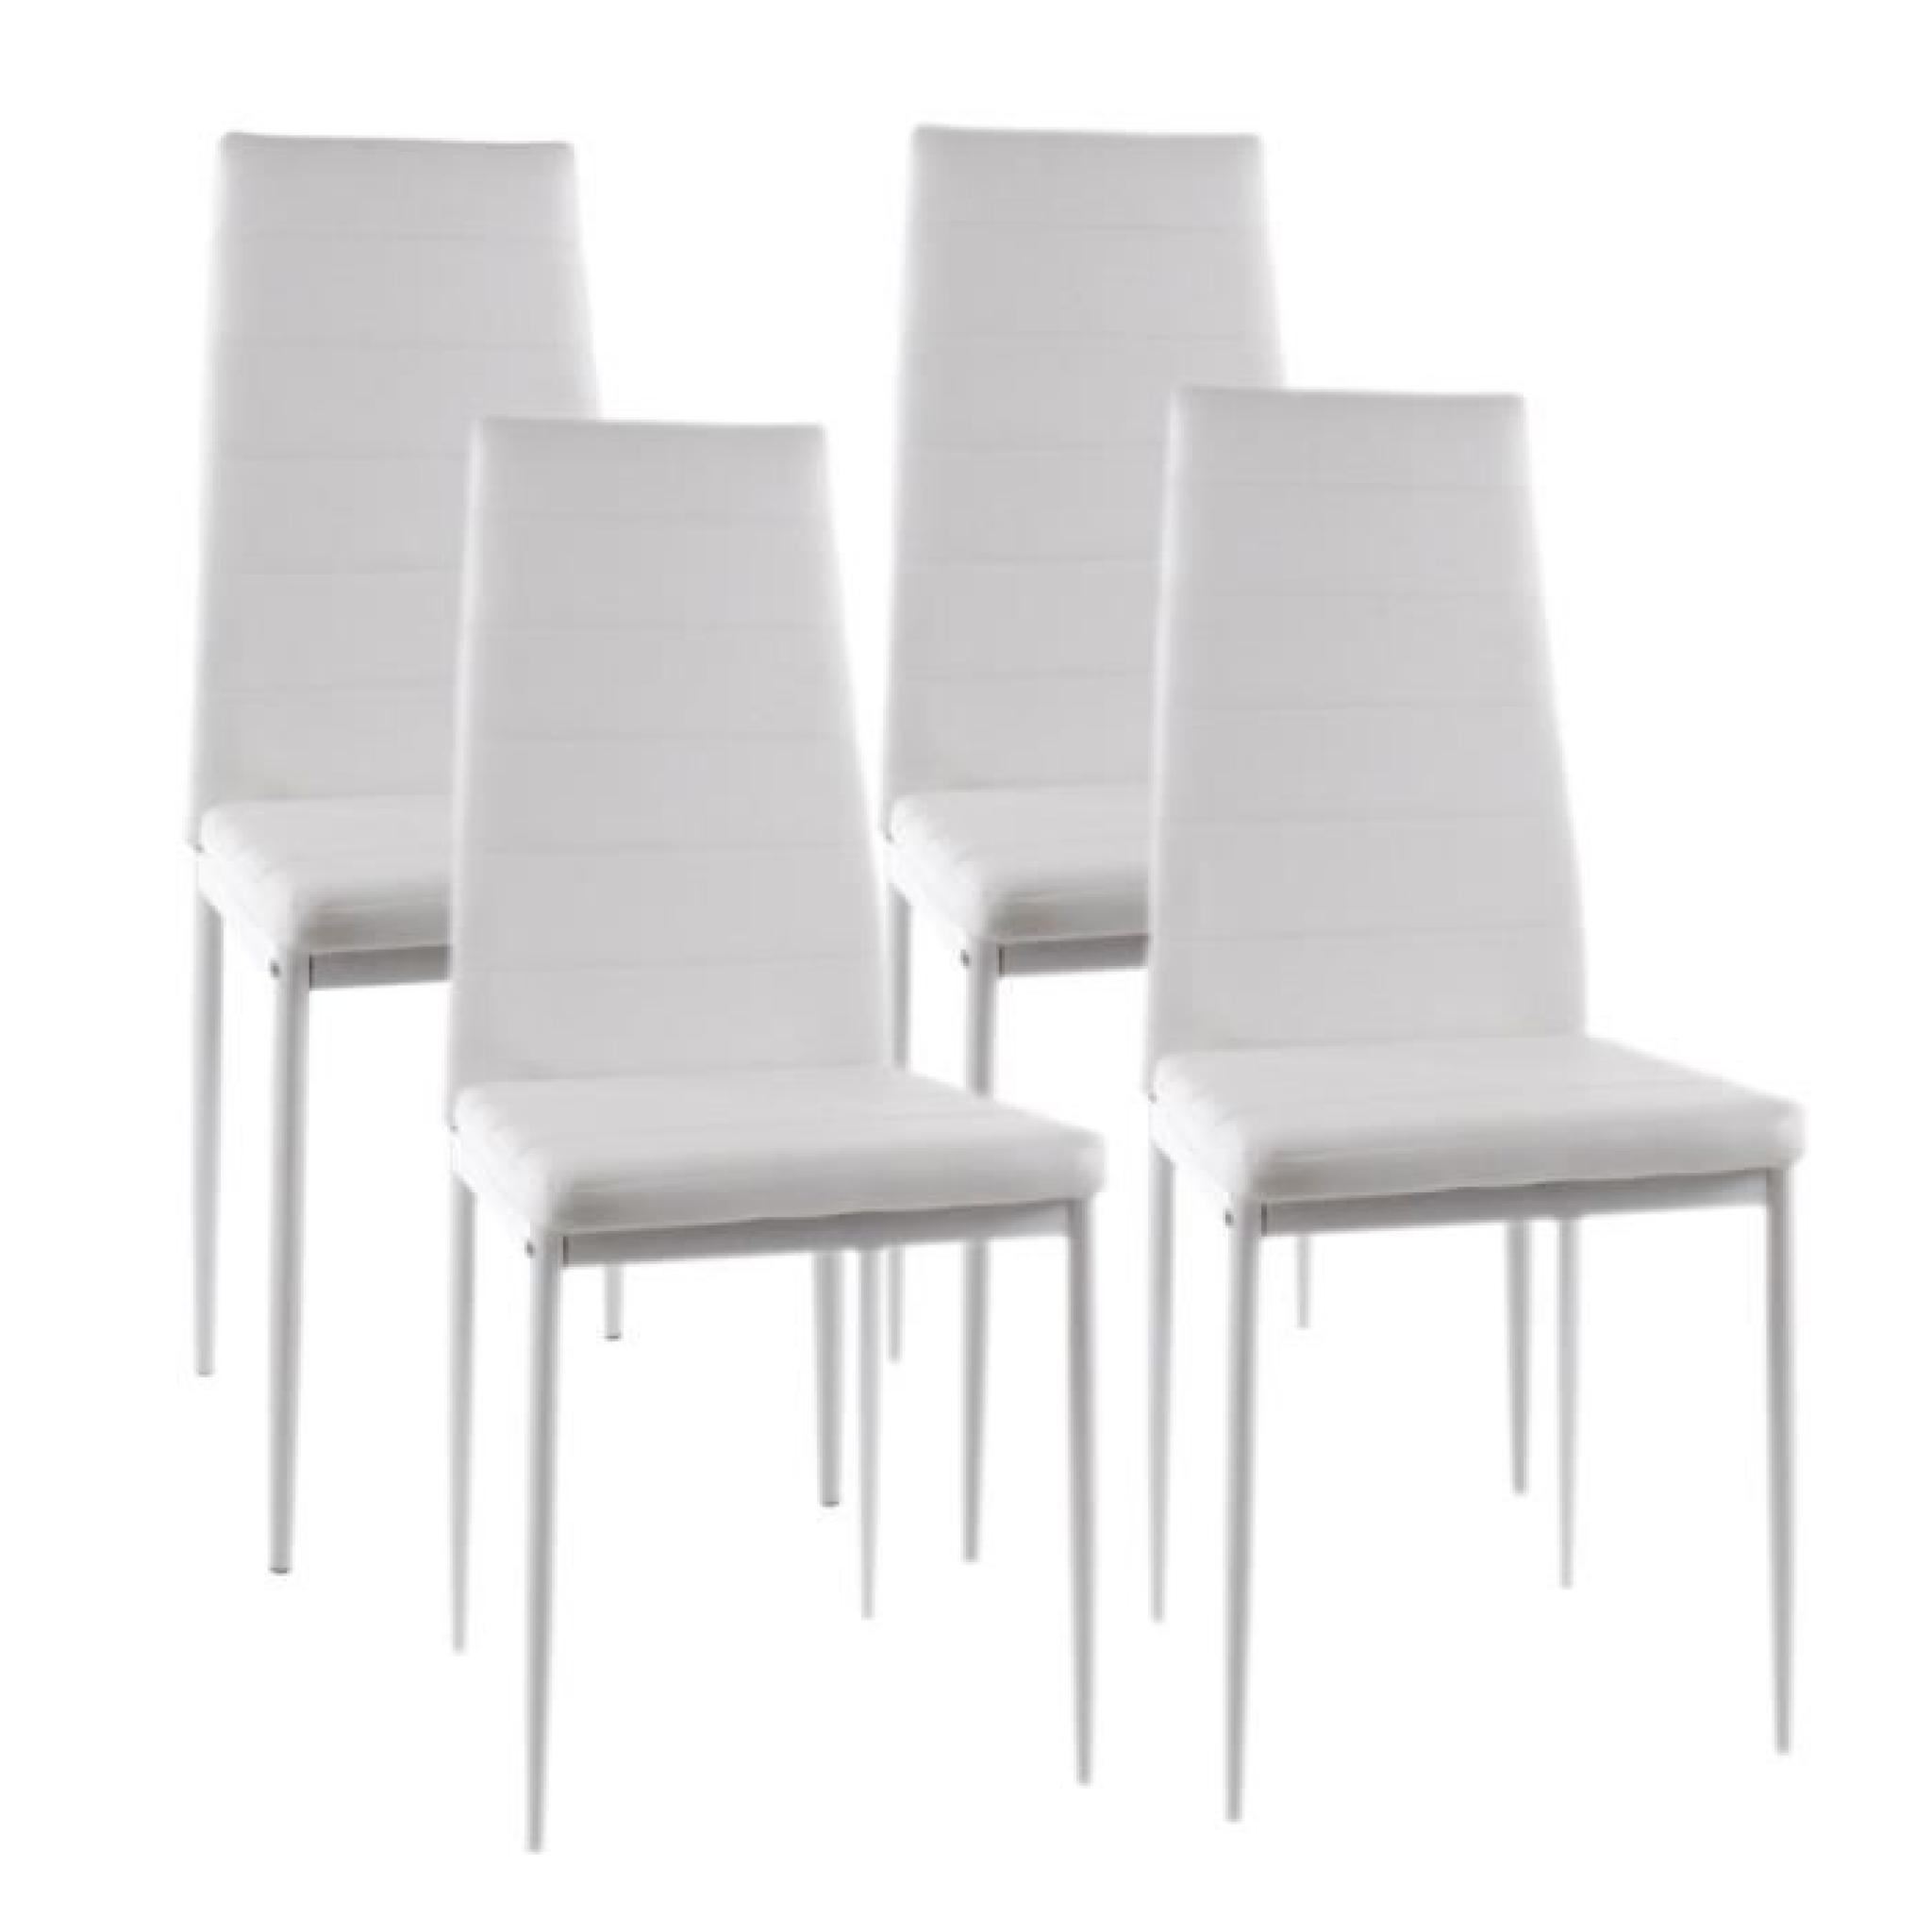 vogue lot de 4 chaises de salle manger blanches achat vente chaise salle a manger pas cher. Black Bedroom Furniture Sets. Home Design Ideas